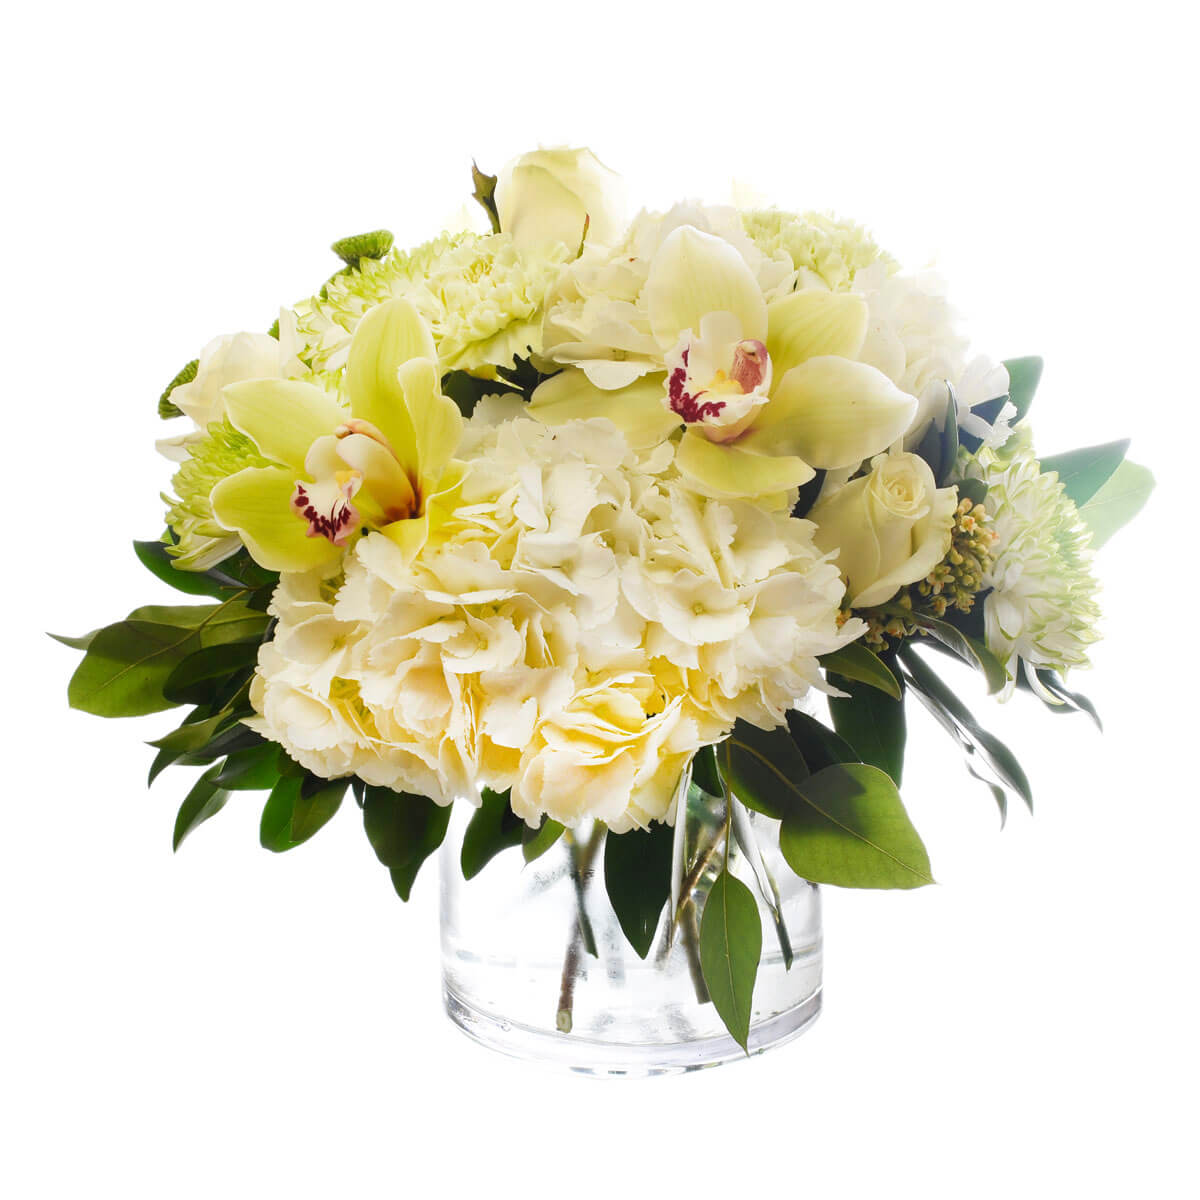 Flowers at Metro Vancouver BC for Delivery - Adele Rae Florist